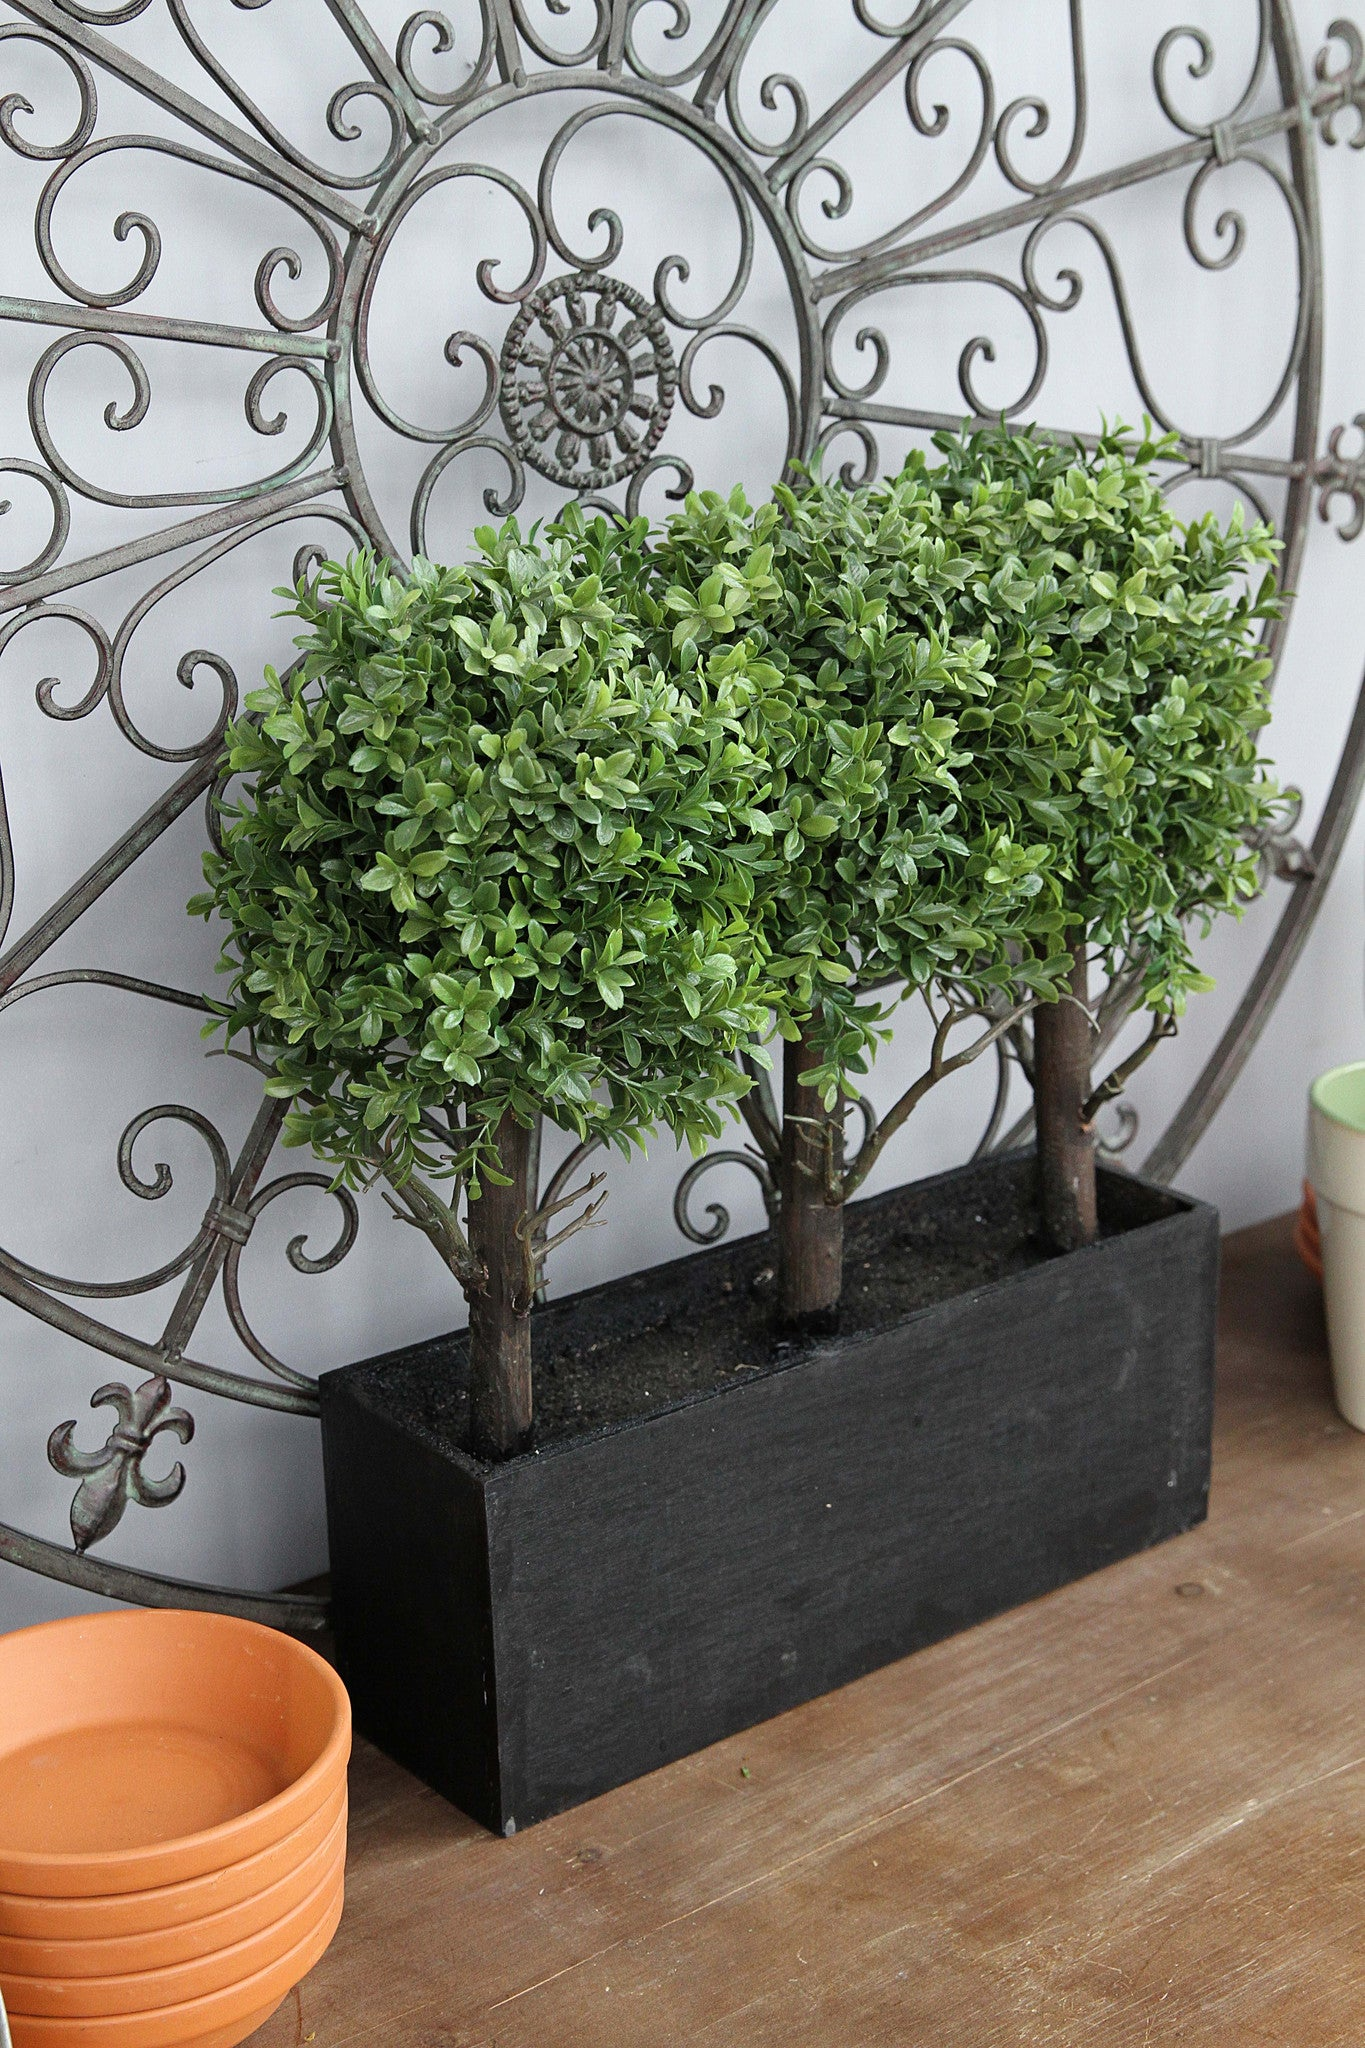 English Boxwood Décor in Container!